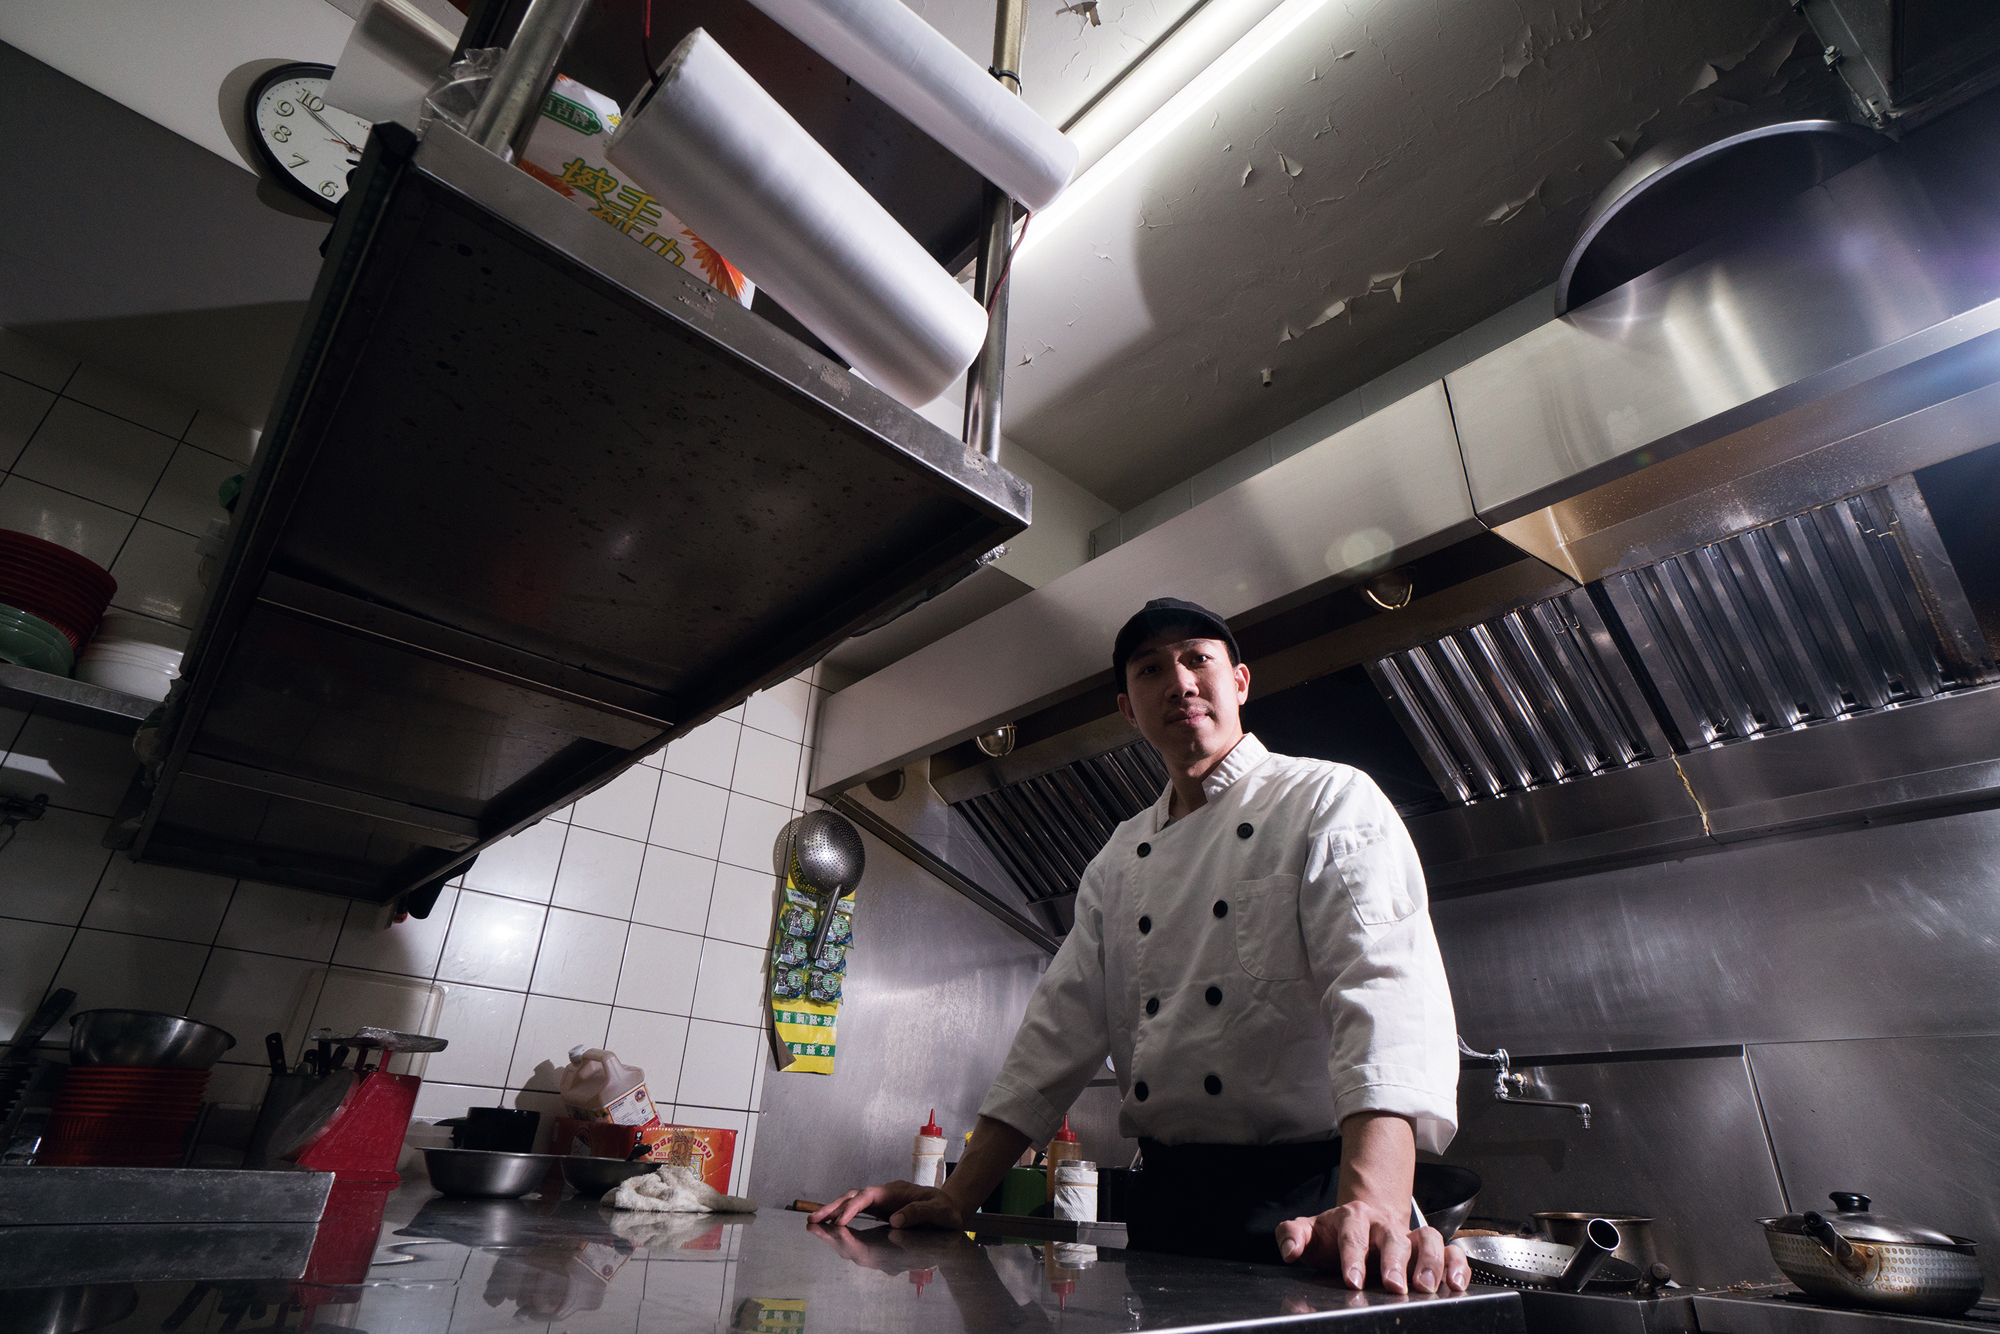 After years of hard work, Fu Yong-ming has become the sous-chef for a well-known Thai restaurant.